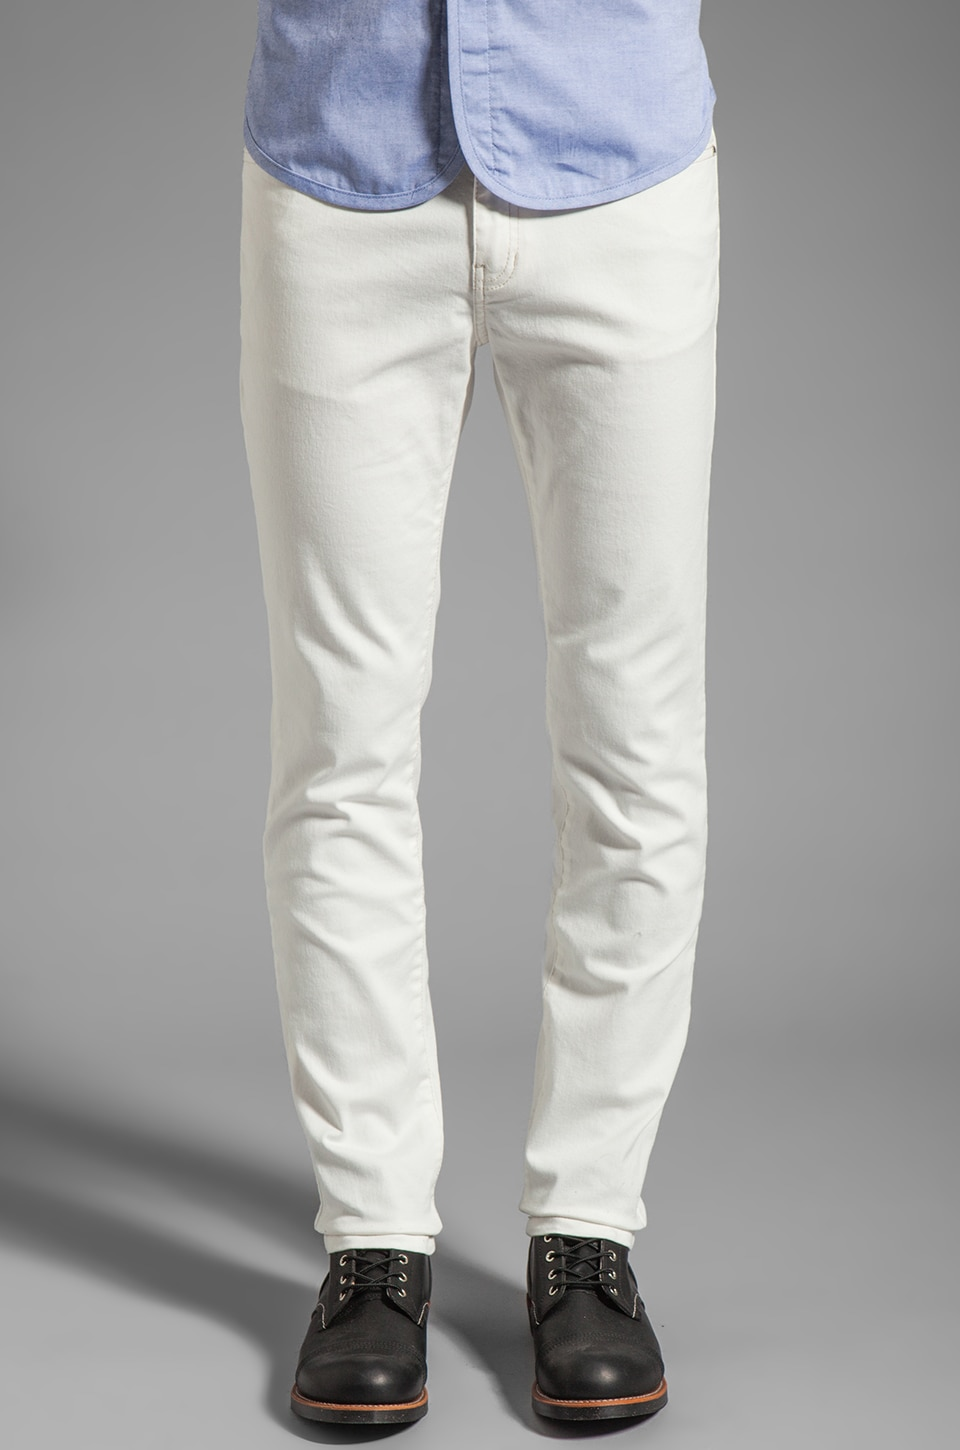 Kai-aakmann Denim Pant in White